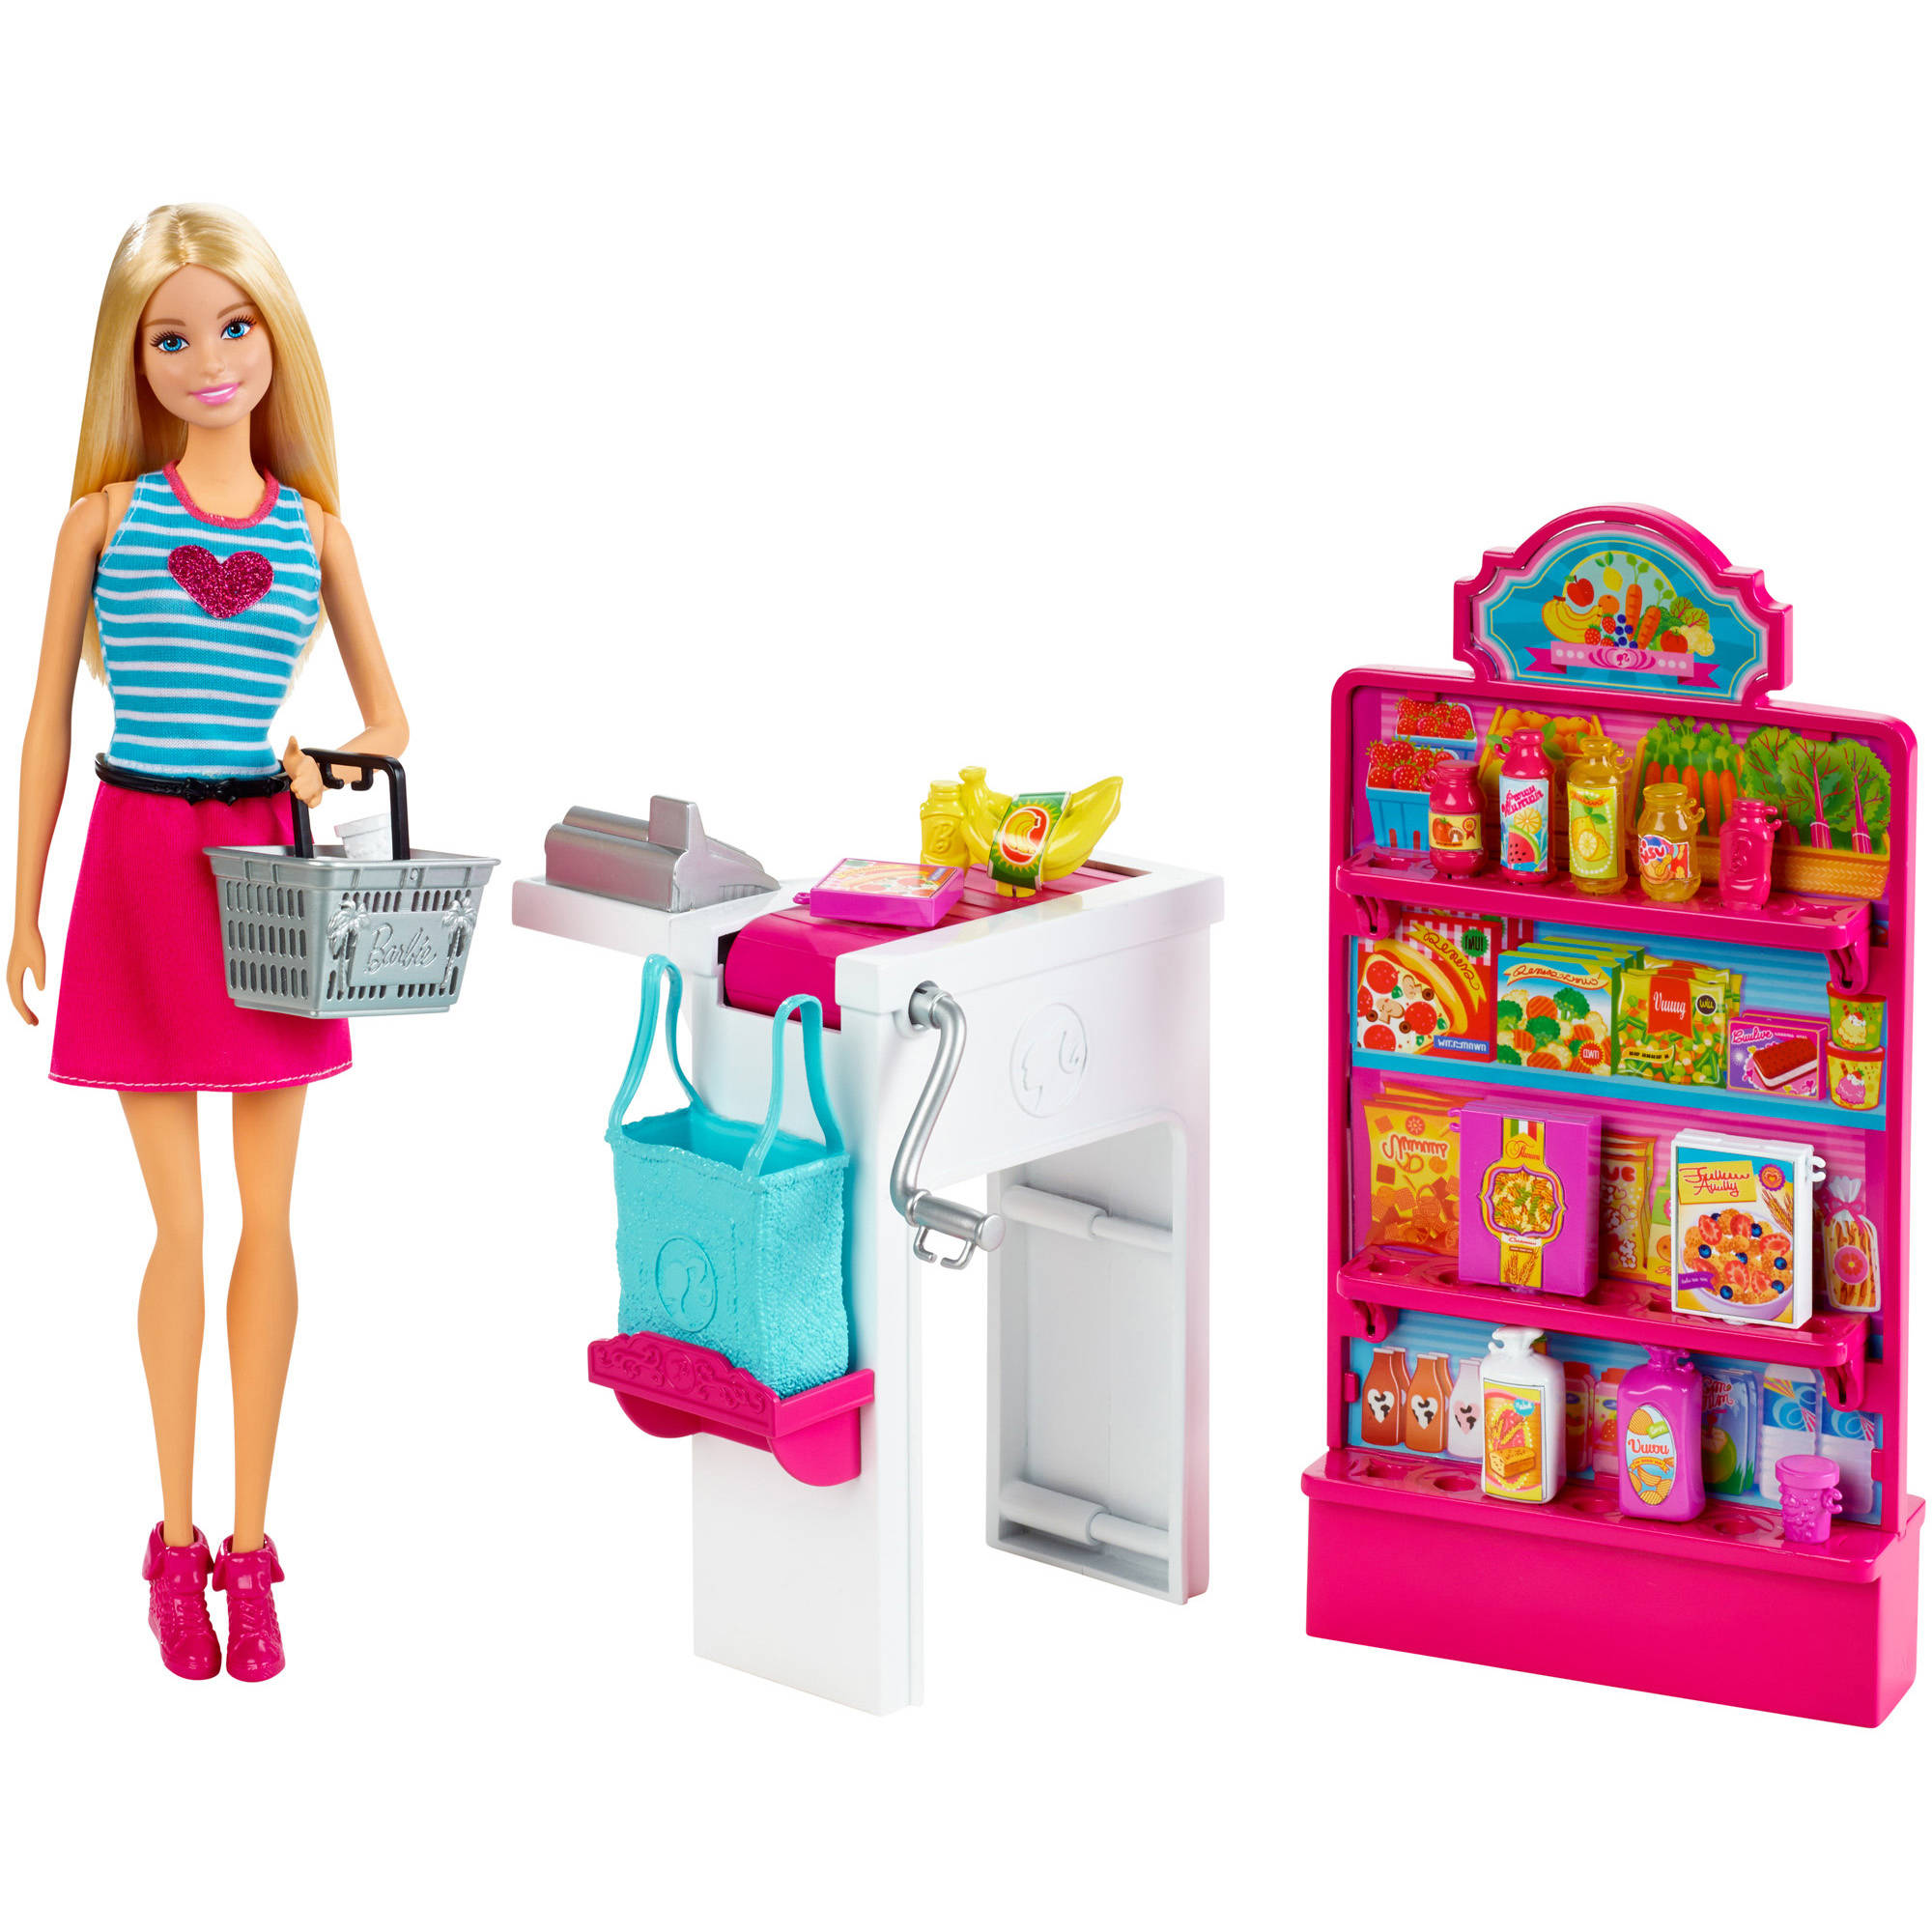 Barbie Malibu Ave Grocery Shop with Doll